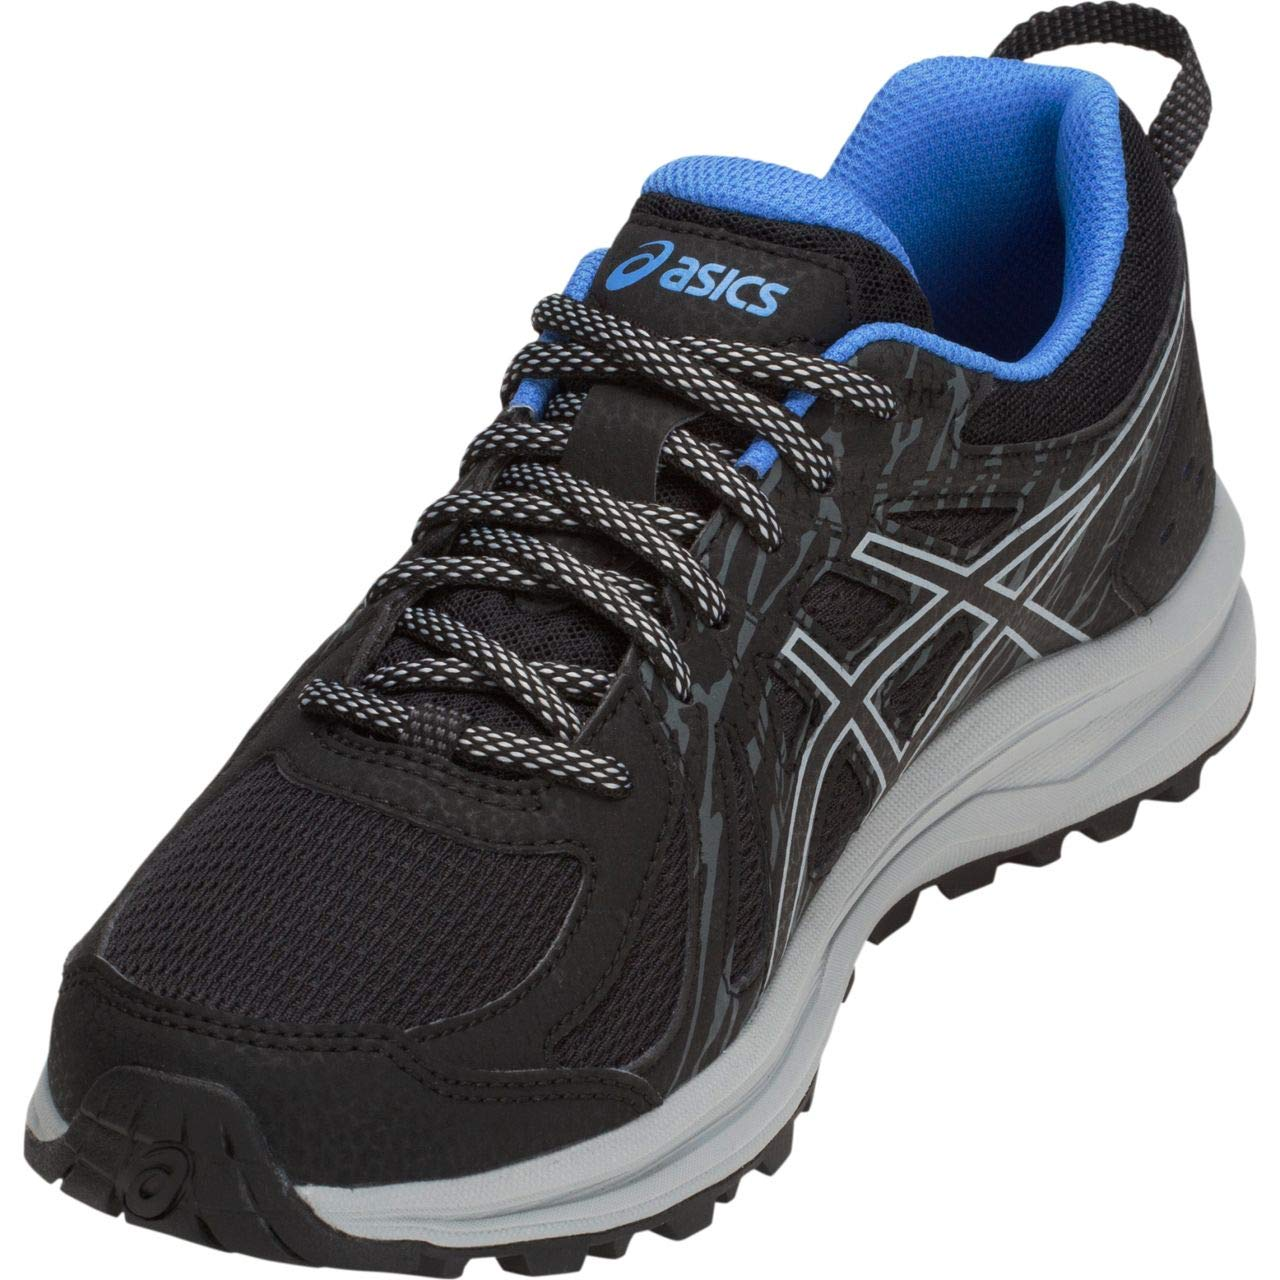 ASICS Frequent Trail Women s Running Shoe, Black Mid Grey, 9 B US